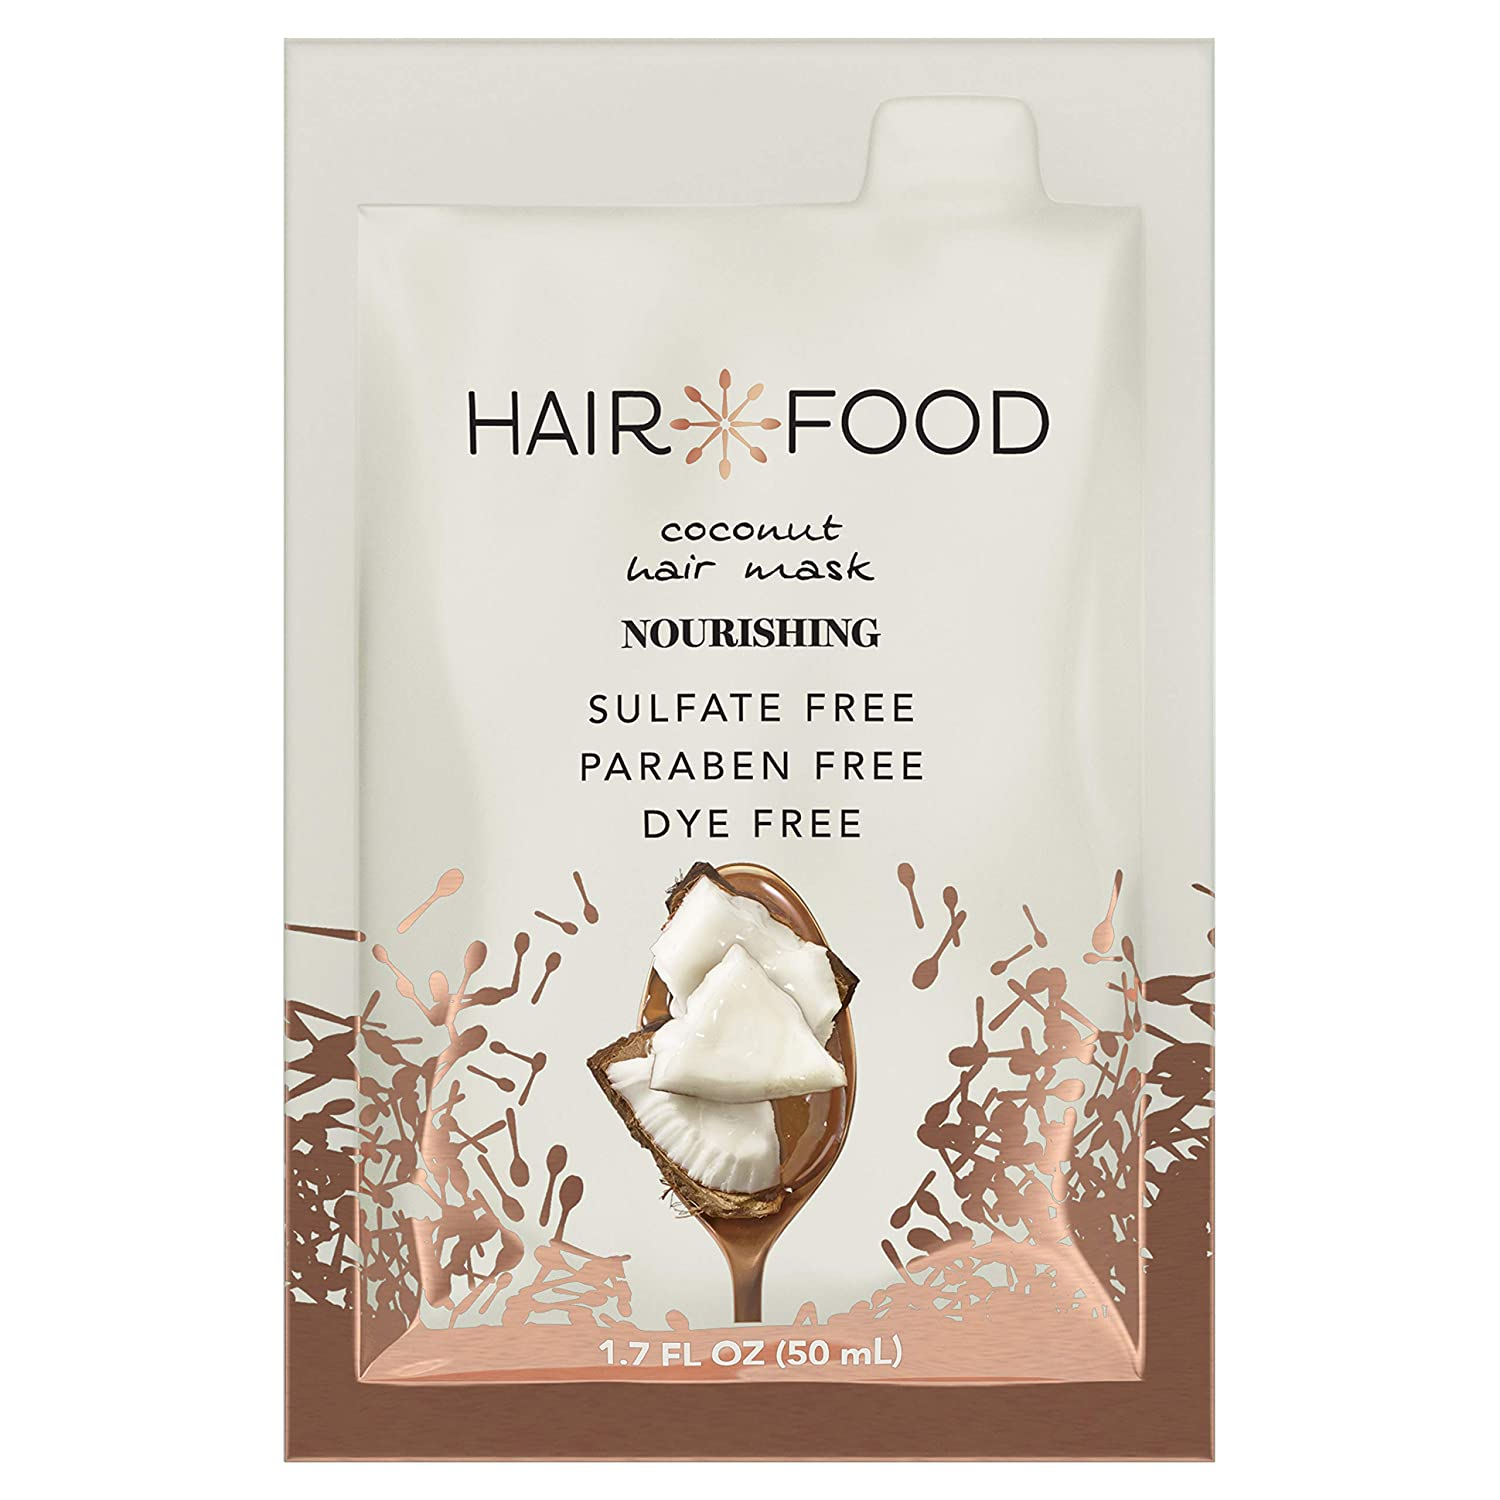 Hair Food Moisturizing Hair Mask for Curly Hair, Coconut, Paraben & Dye Free 1.7 fl oz, 10 Count